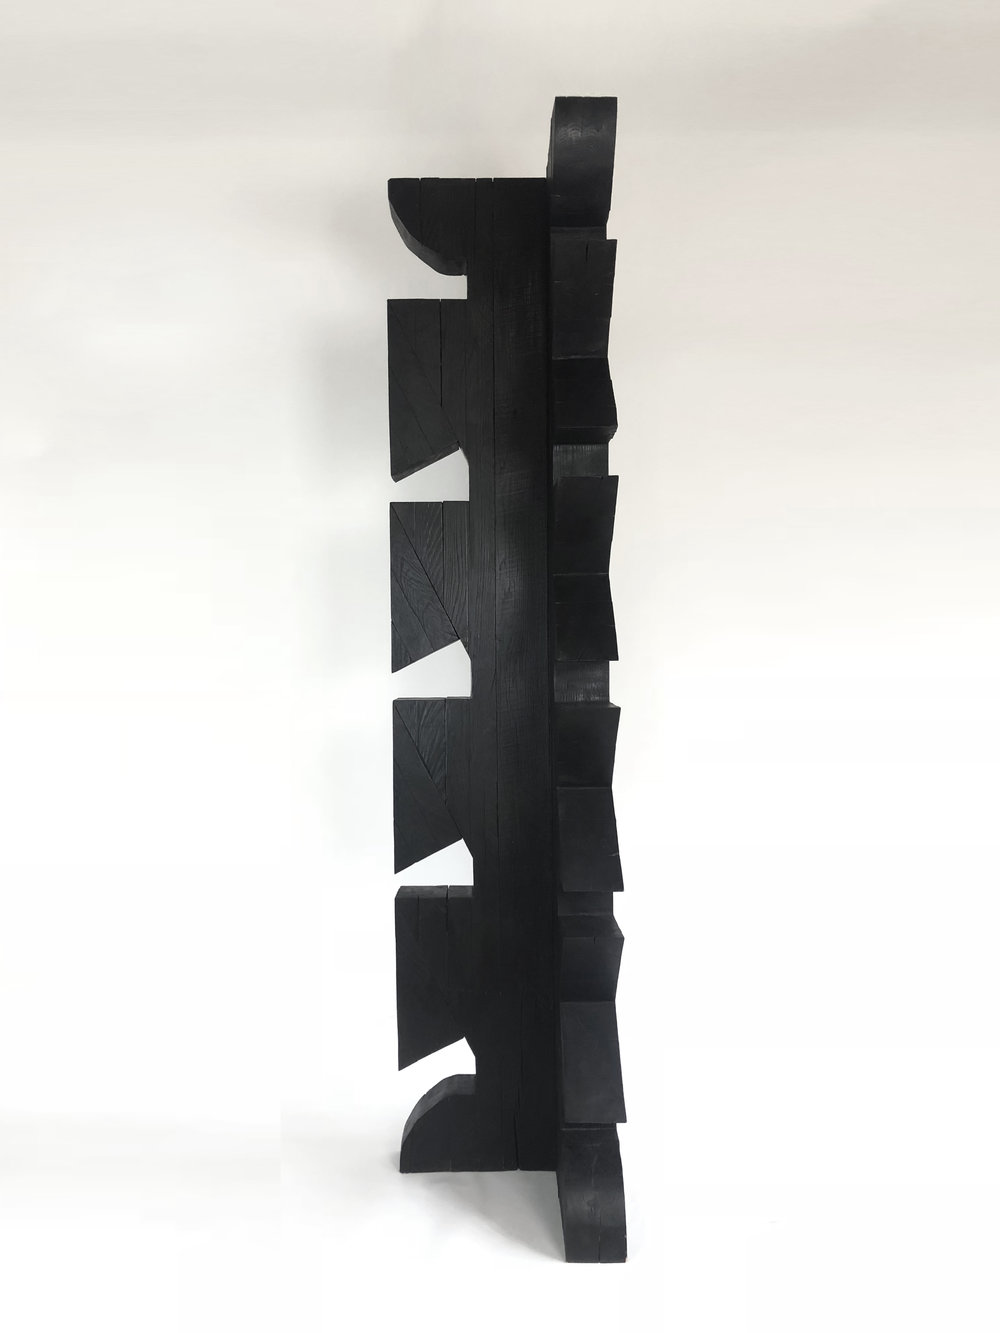 'Torr III', Burnt Oak finished with wax, 188x 40x40cm